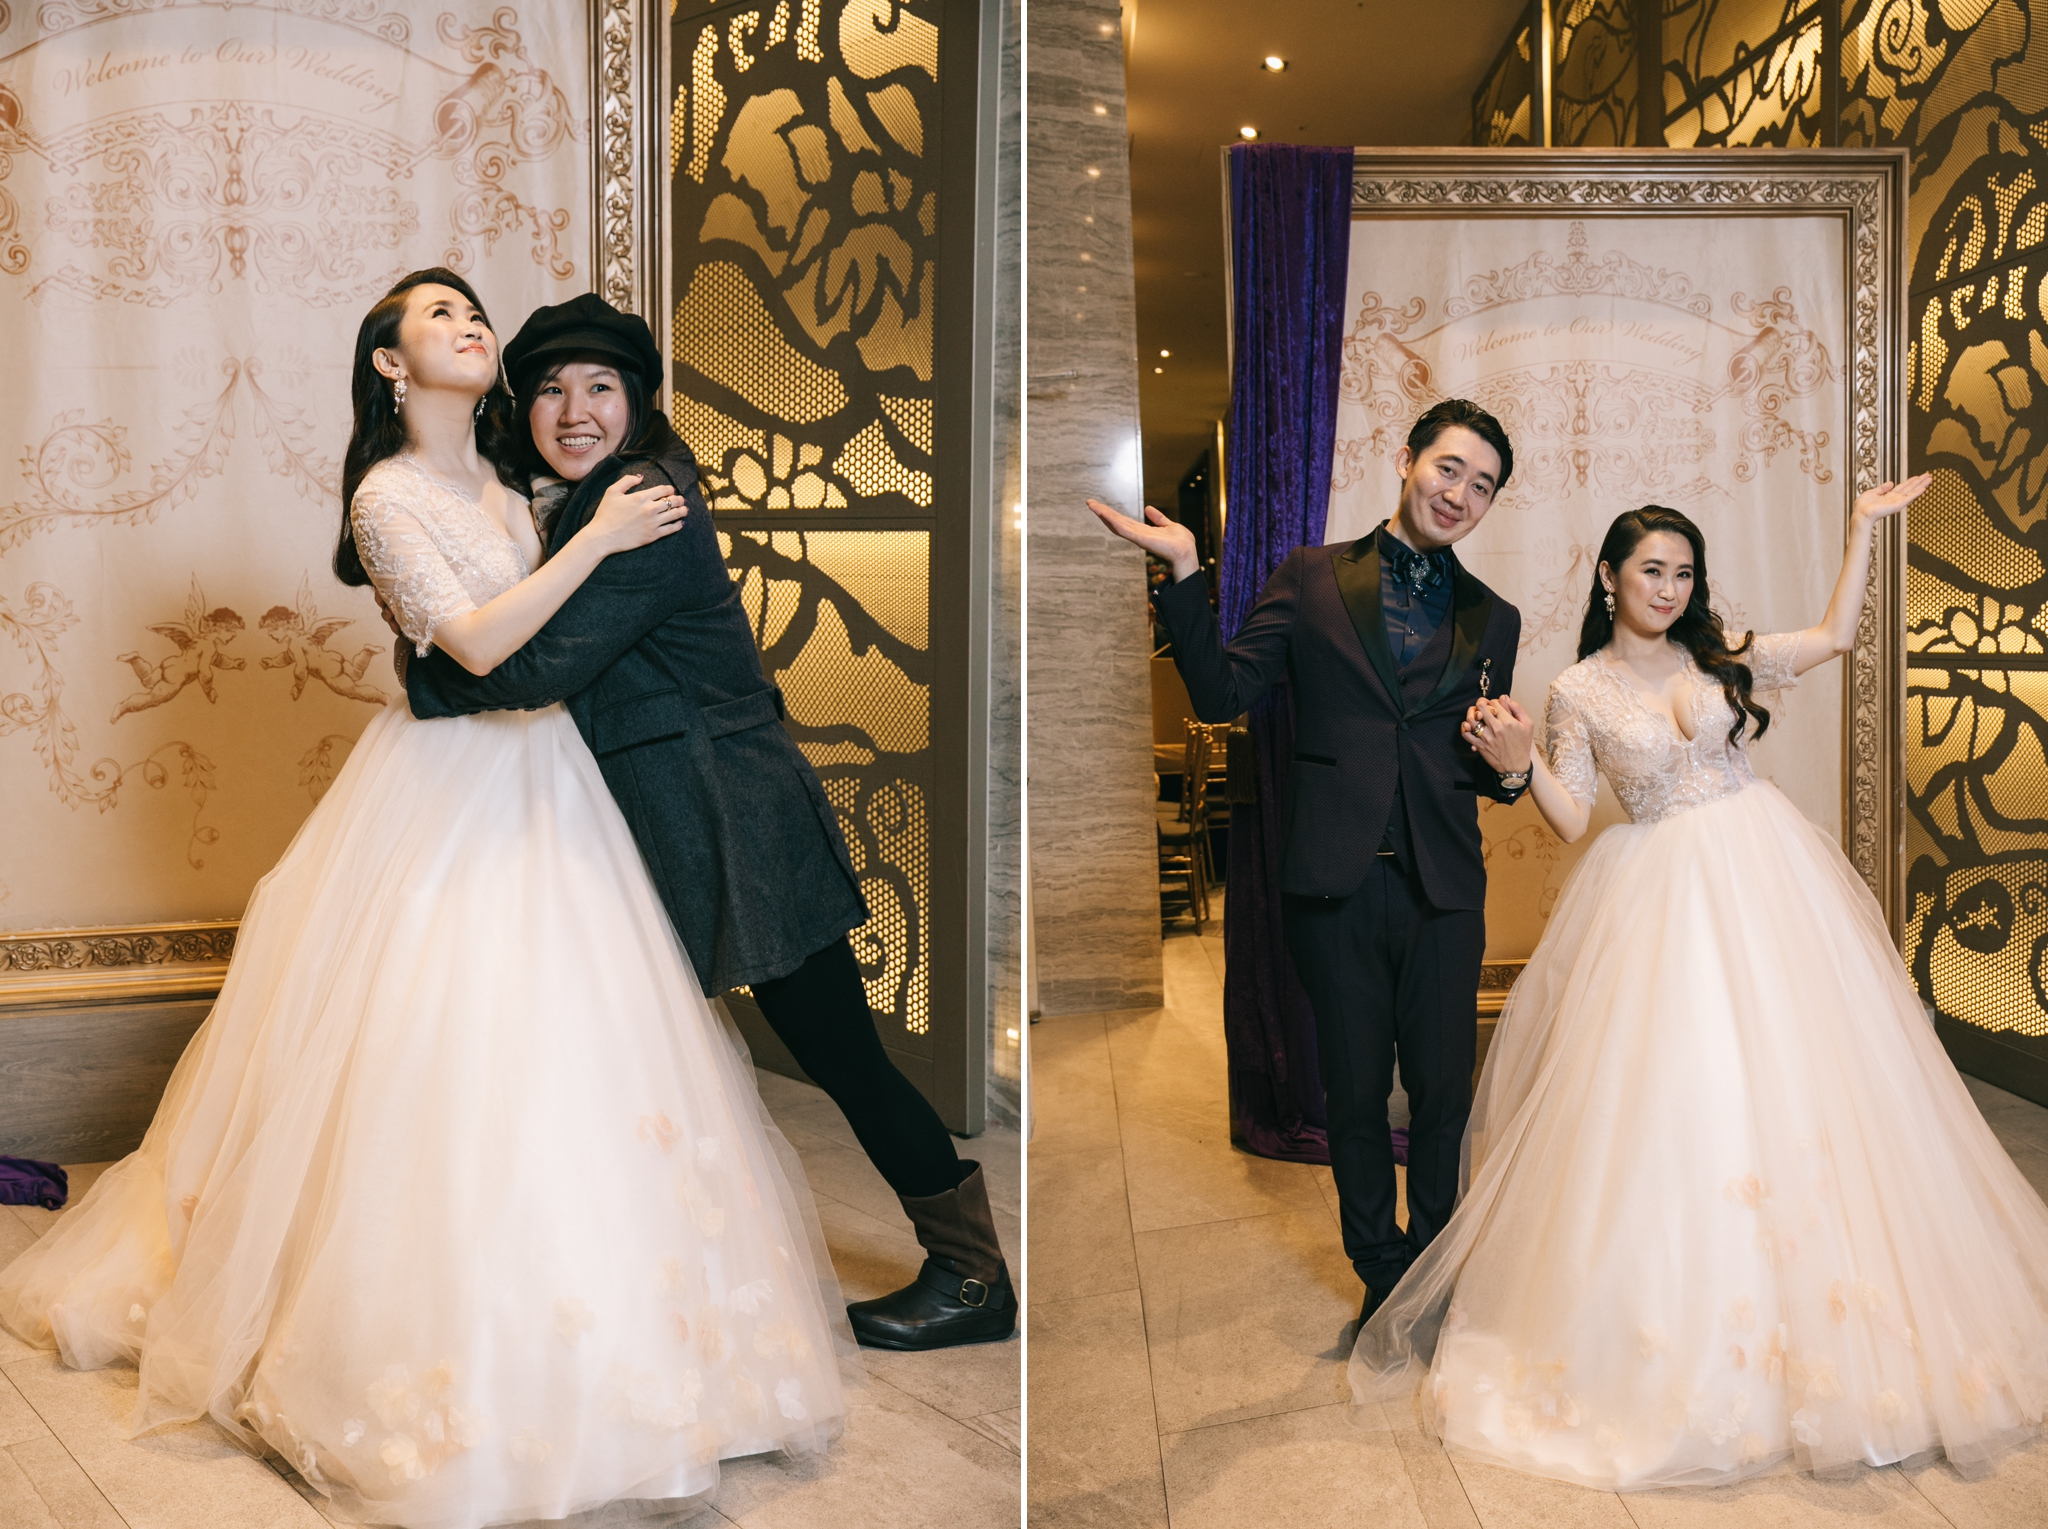 Keddy+Richard-wedding-新莊頤品飯店-227.jpg